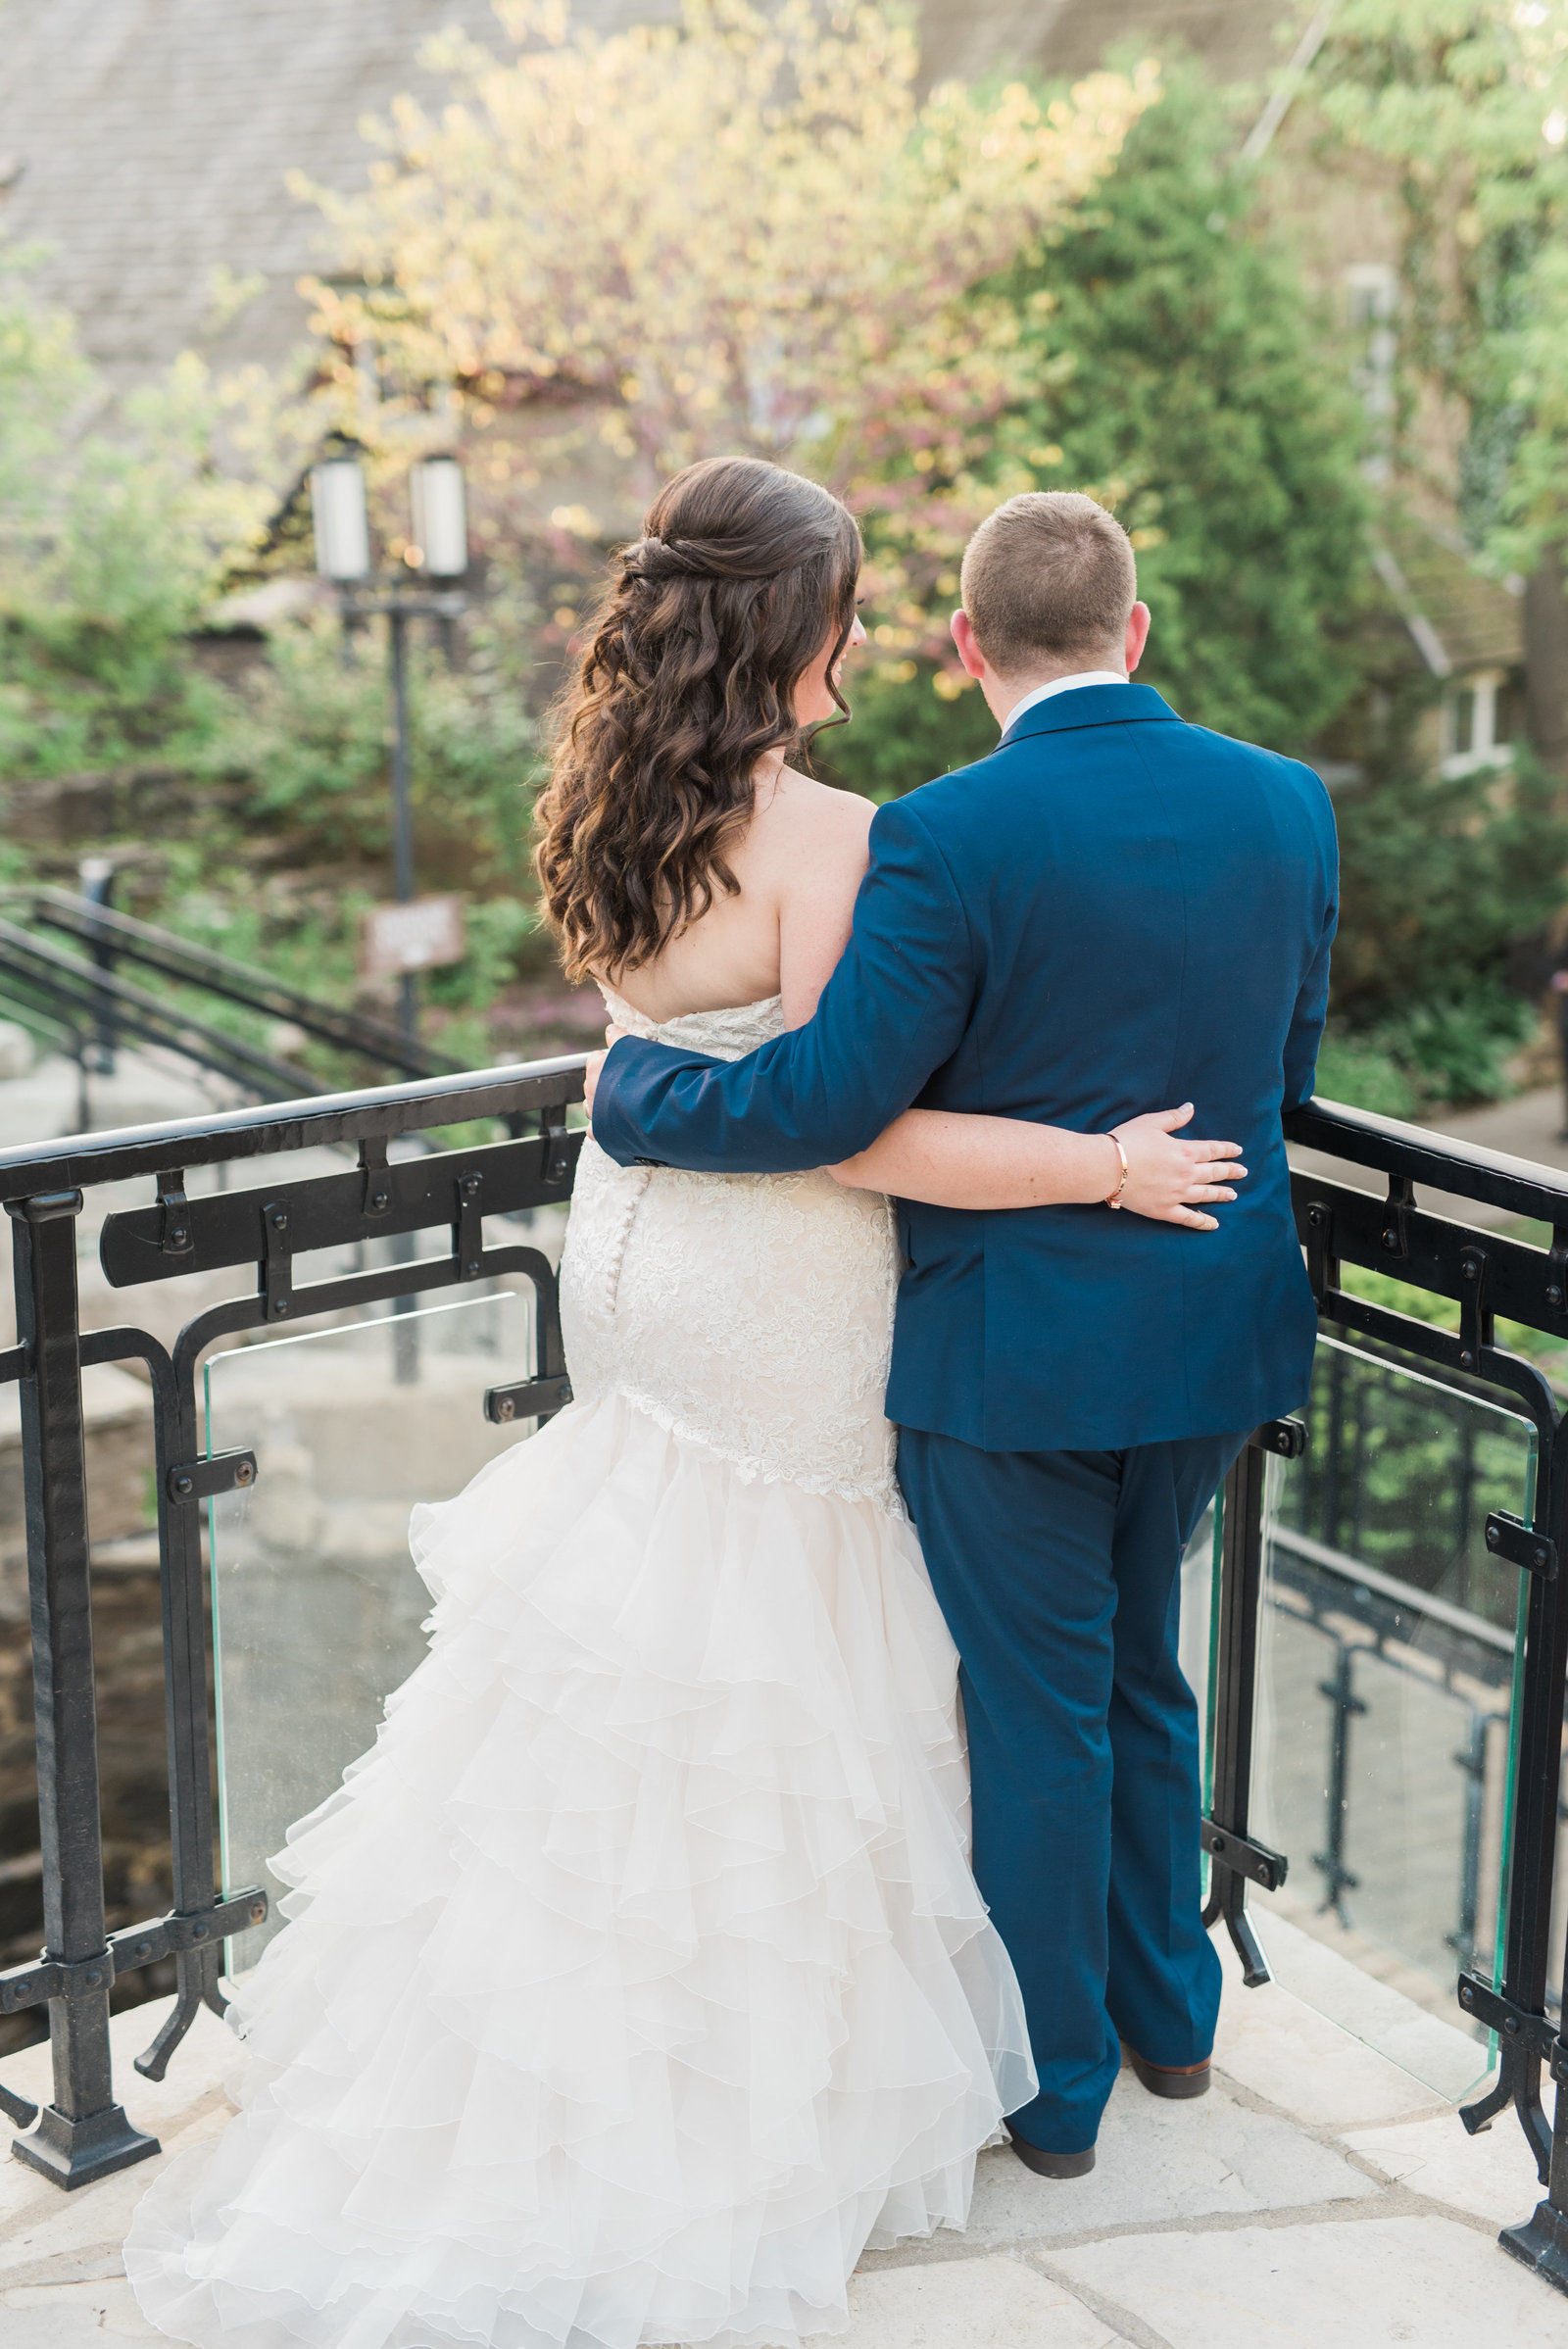 Sarah + Matt Sneak Peek-45